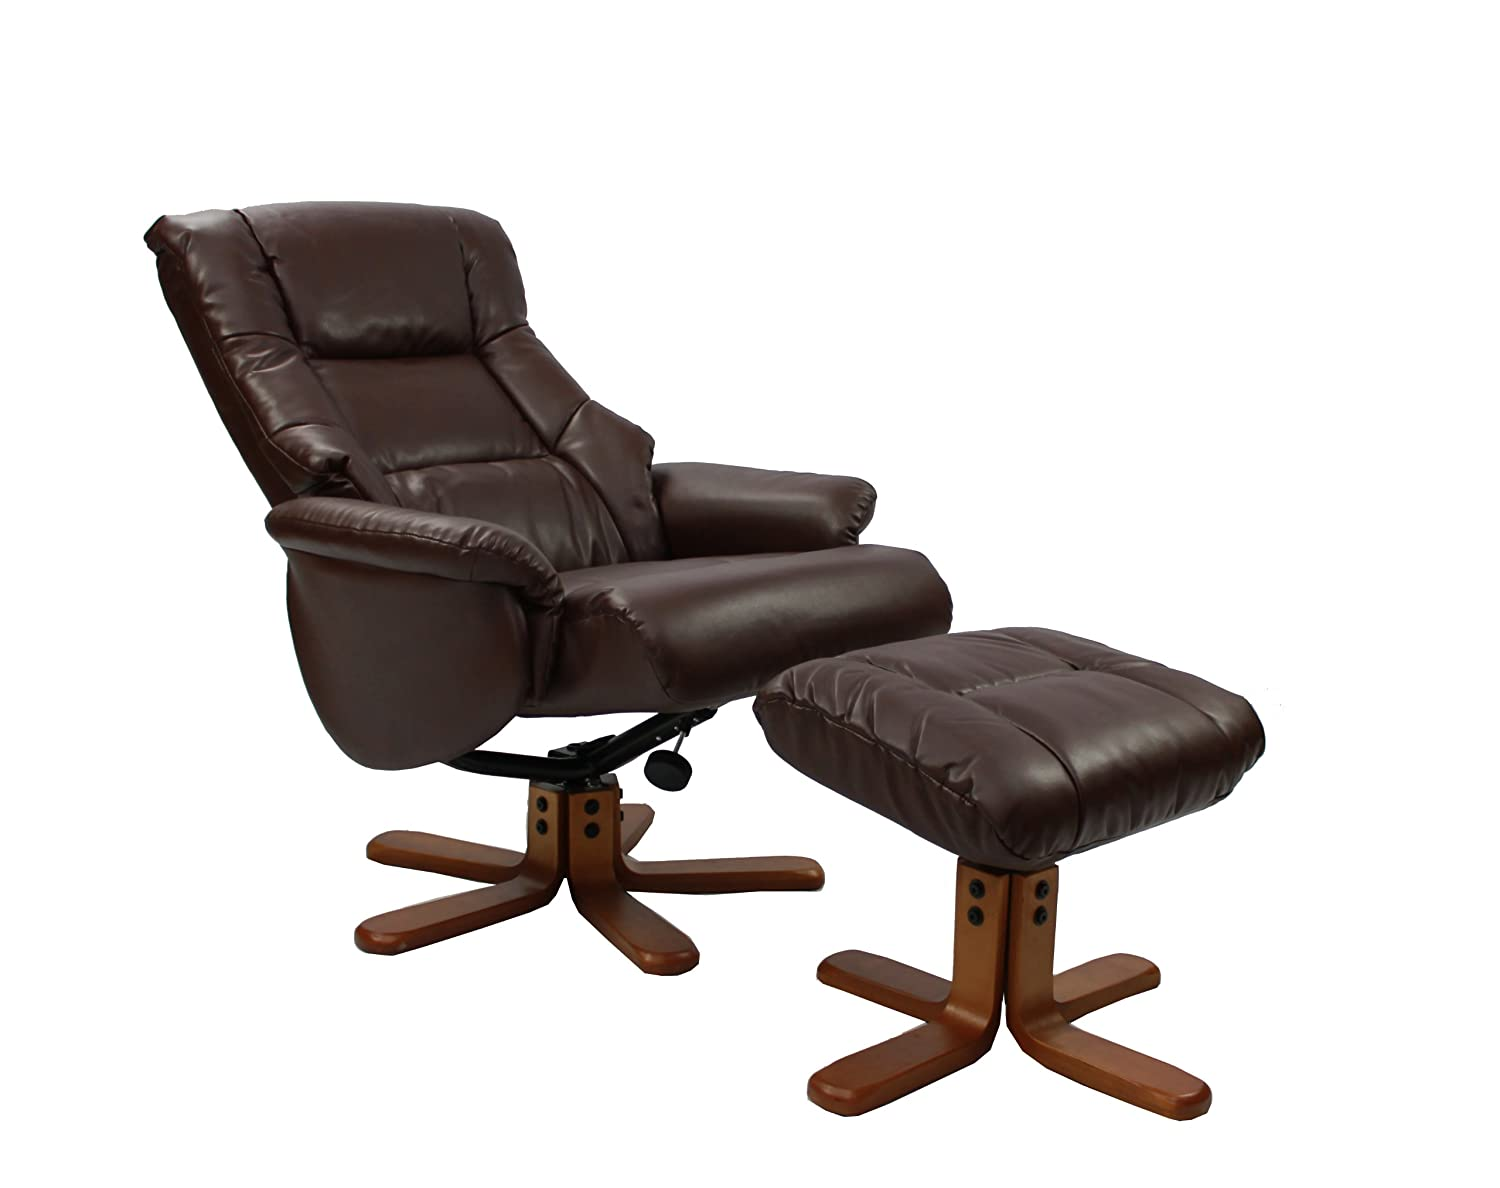 The Shanghai - Bonded Leather Recliner Swivel Chair u0026 Matching Footstool in Nut Brown Amazon.co.uk Kitchen u0026 Home  sc 1 st  Amazon UK & The Shanghai - Bonded Leather Recliner Swivel Chair u0026 Matching ... islam-shia.org